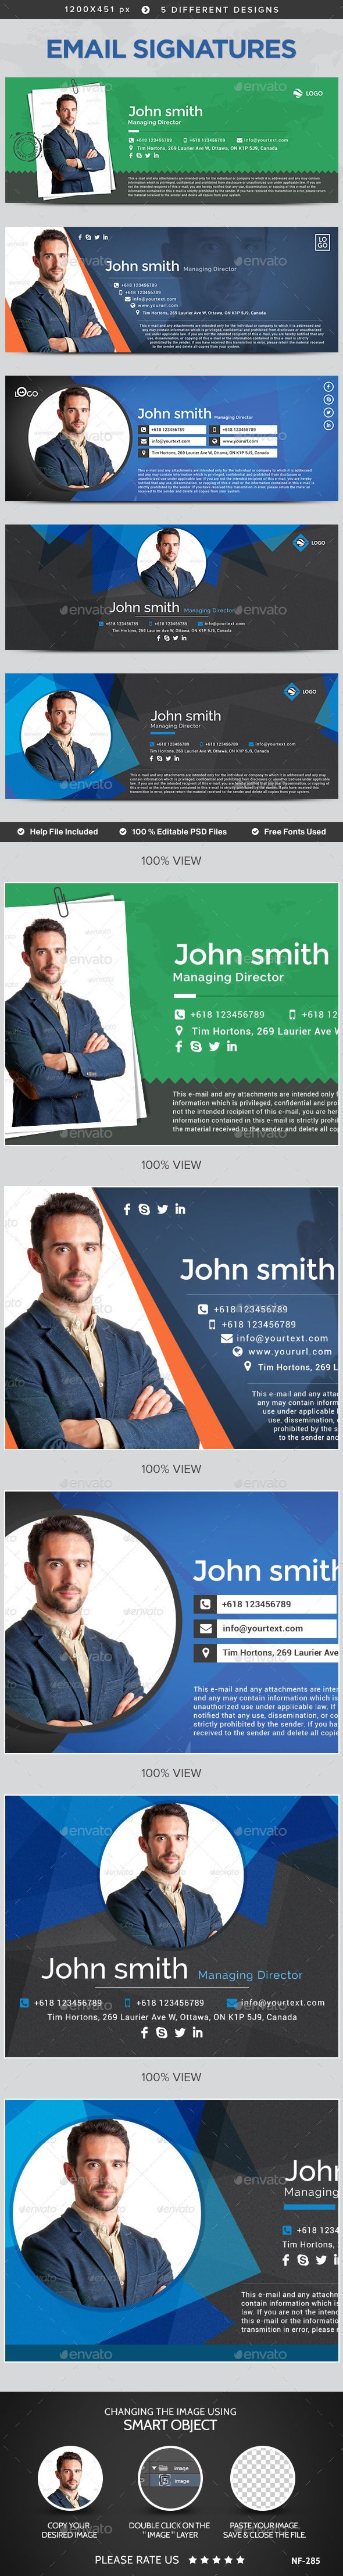 Email Signature Templates - 5 Designs (Photoshop PSD, CS3, 1200x451, custom email, email, email design, email setting, email signature, email stationery, flat, modern, personal signature, photoshop, professional, signature, simple, standard email, stationery)